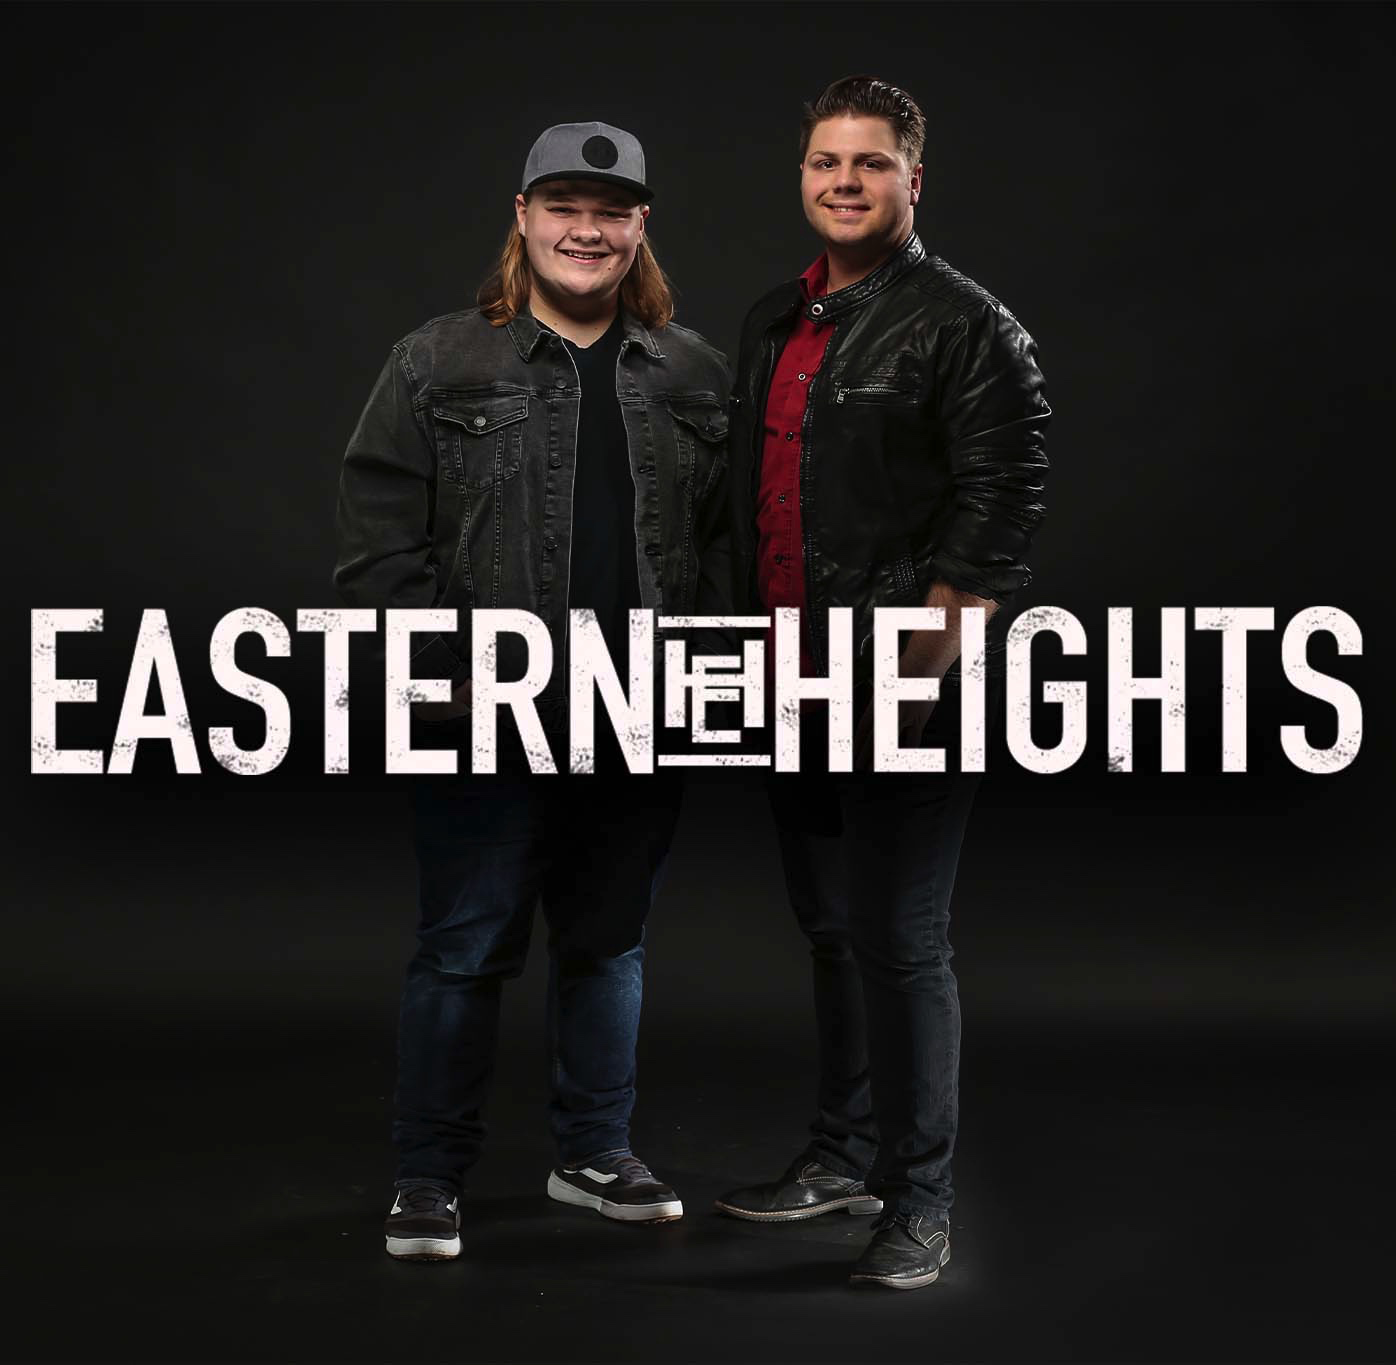 Eastern-Heights